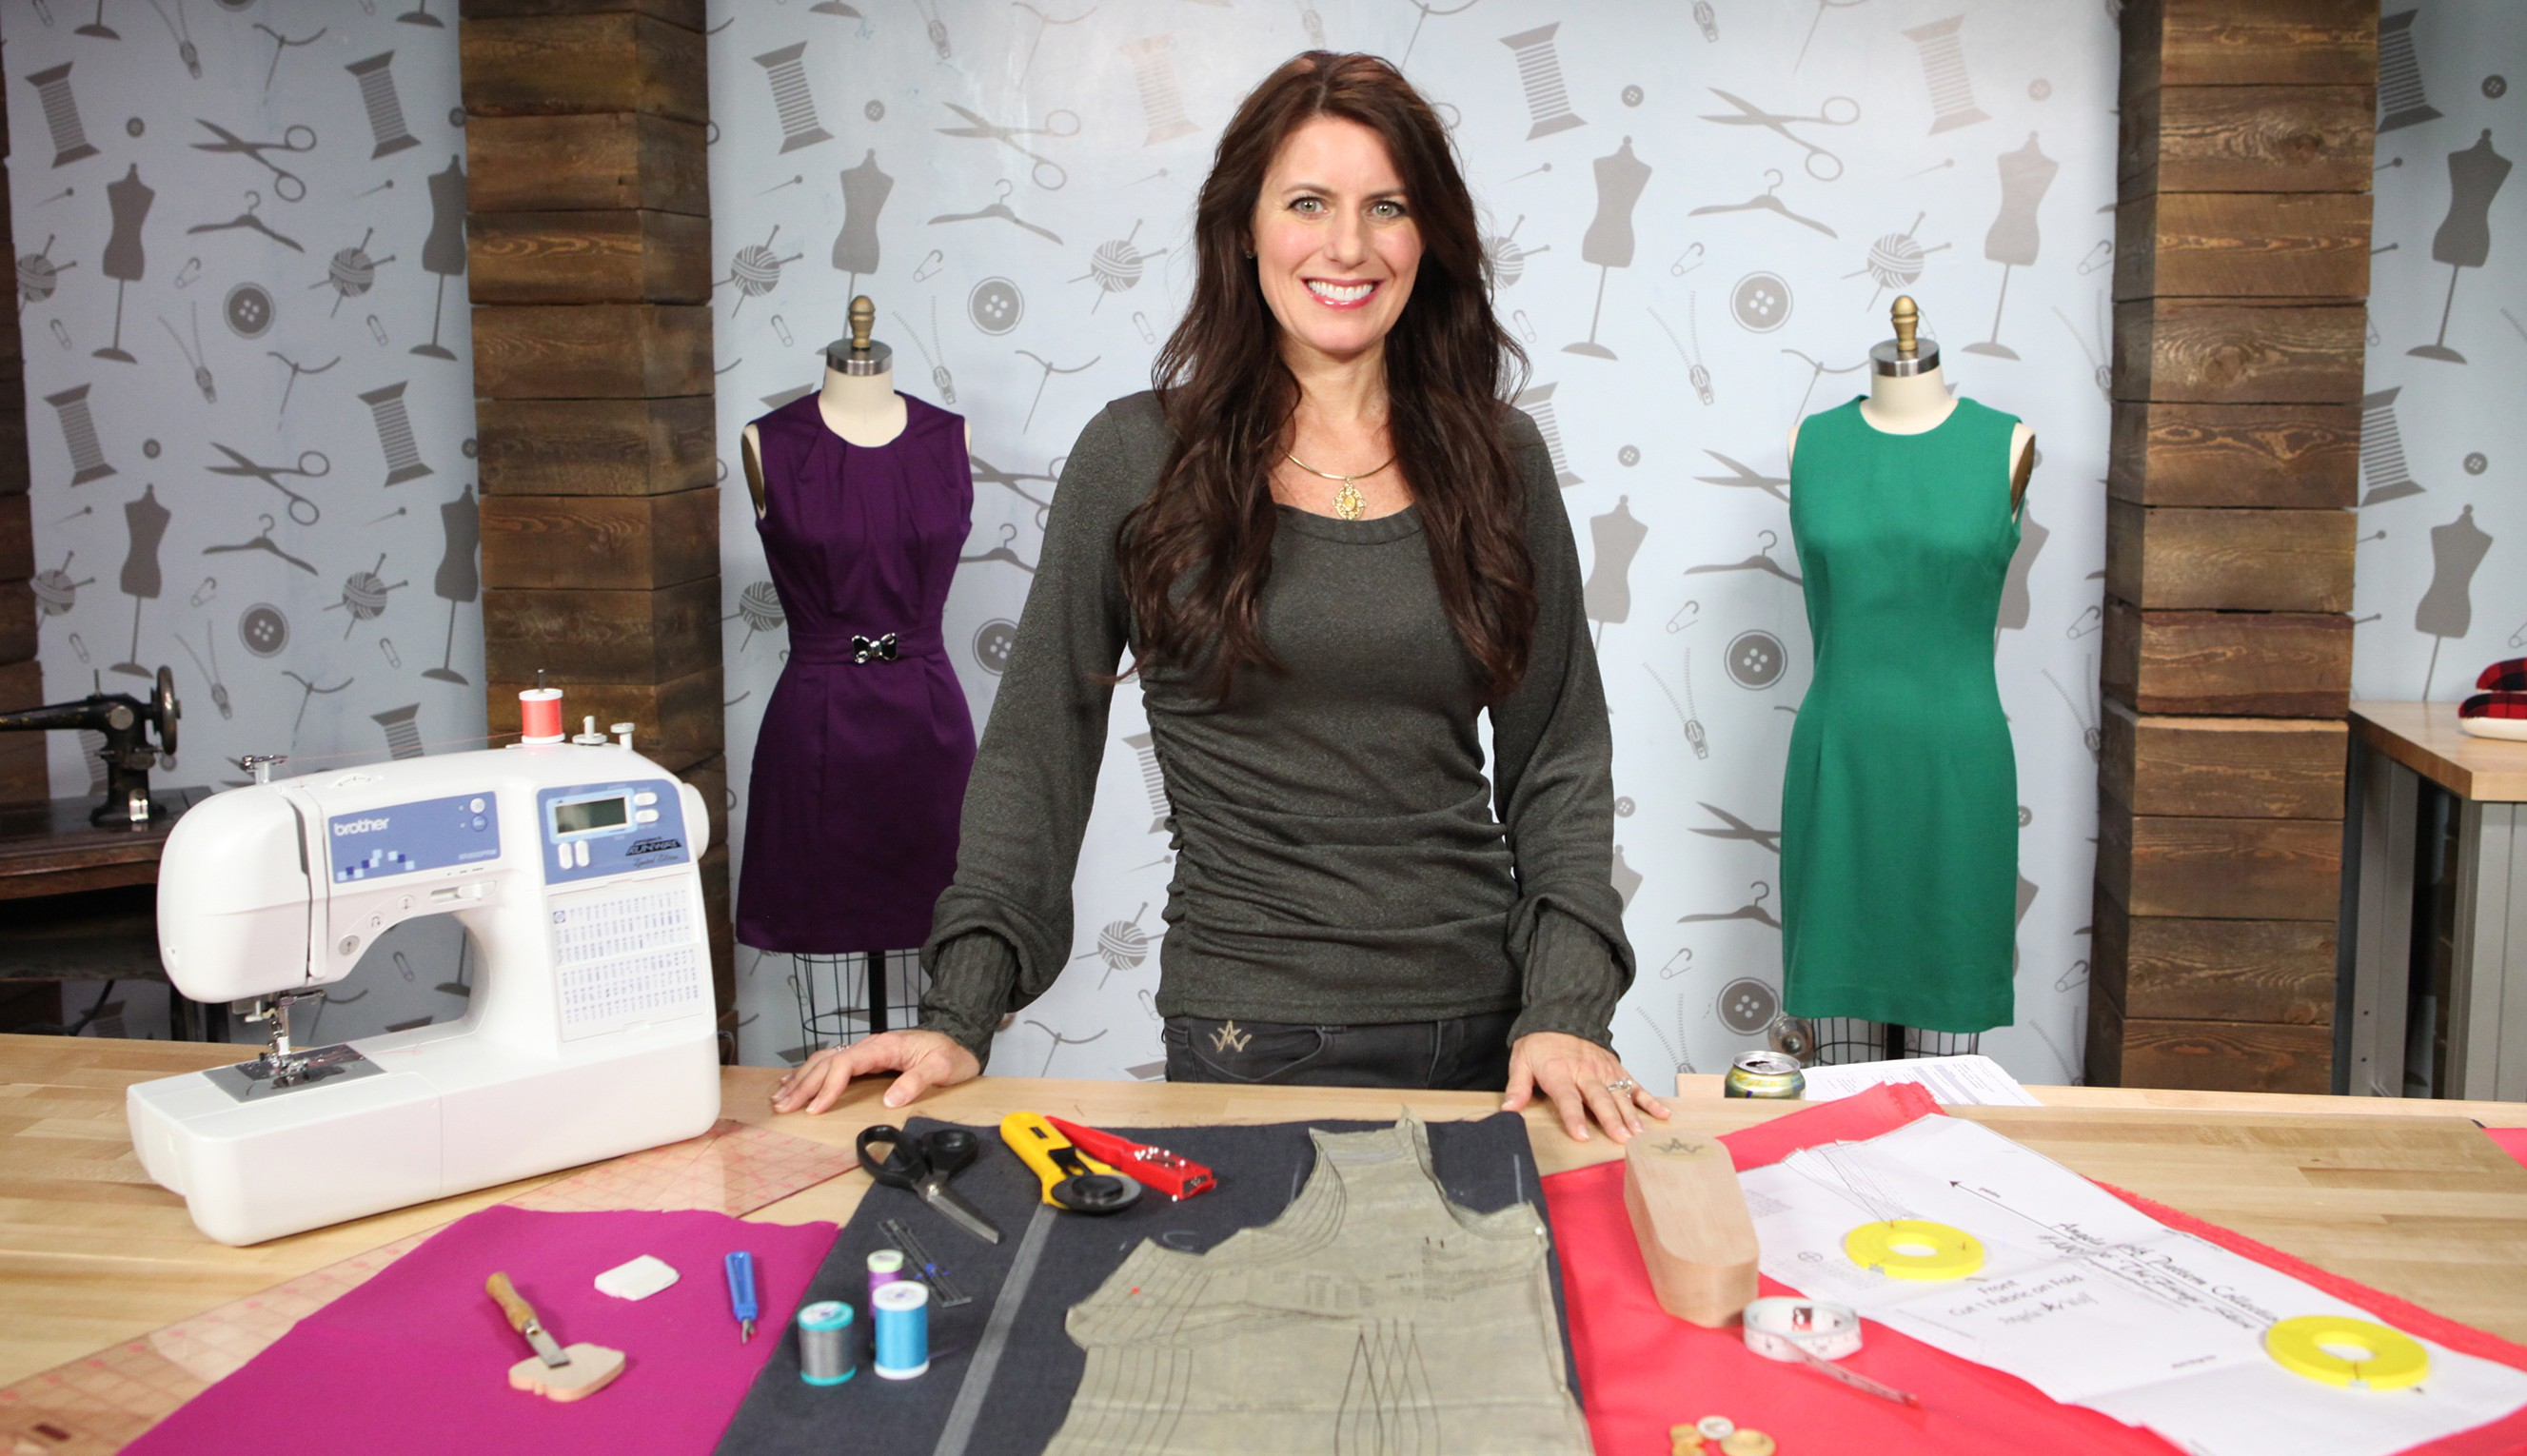 Angela Wolf sewing for beginners Crafty